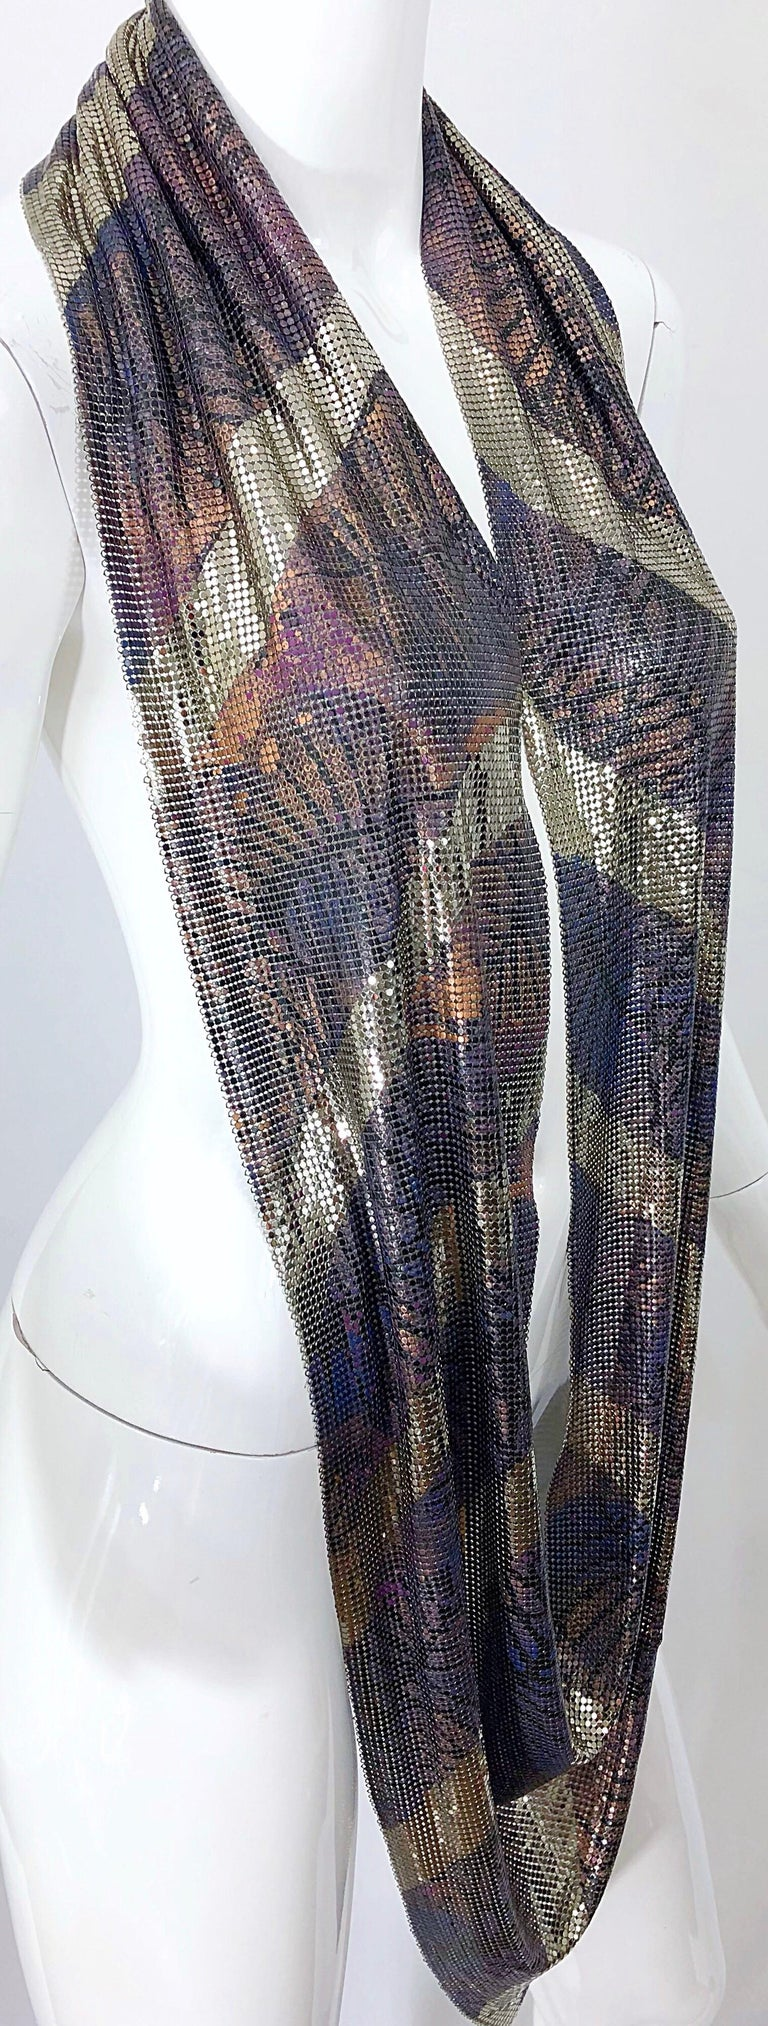 1970s Chainmail Hand Painted Metal Paco Rabanne Style Vintage 70s Scarf Top For Sale 3